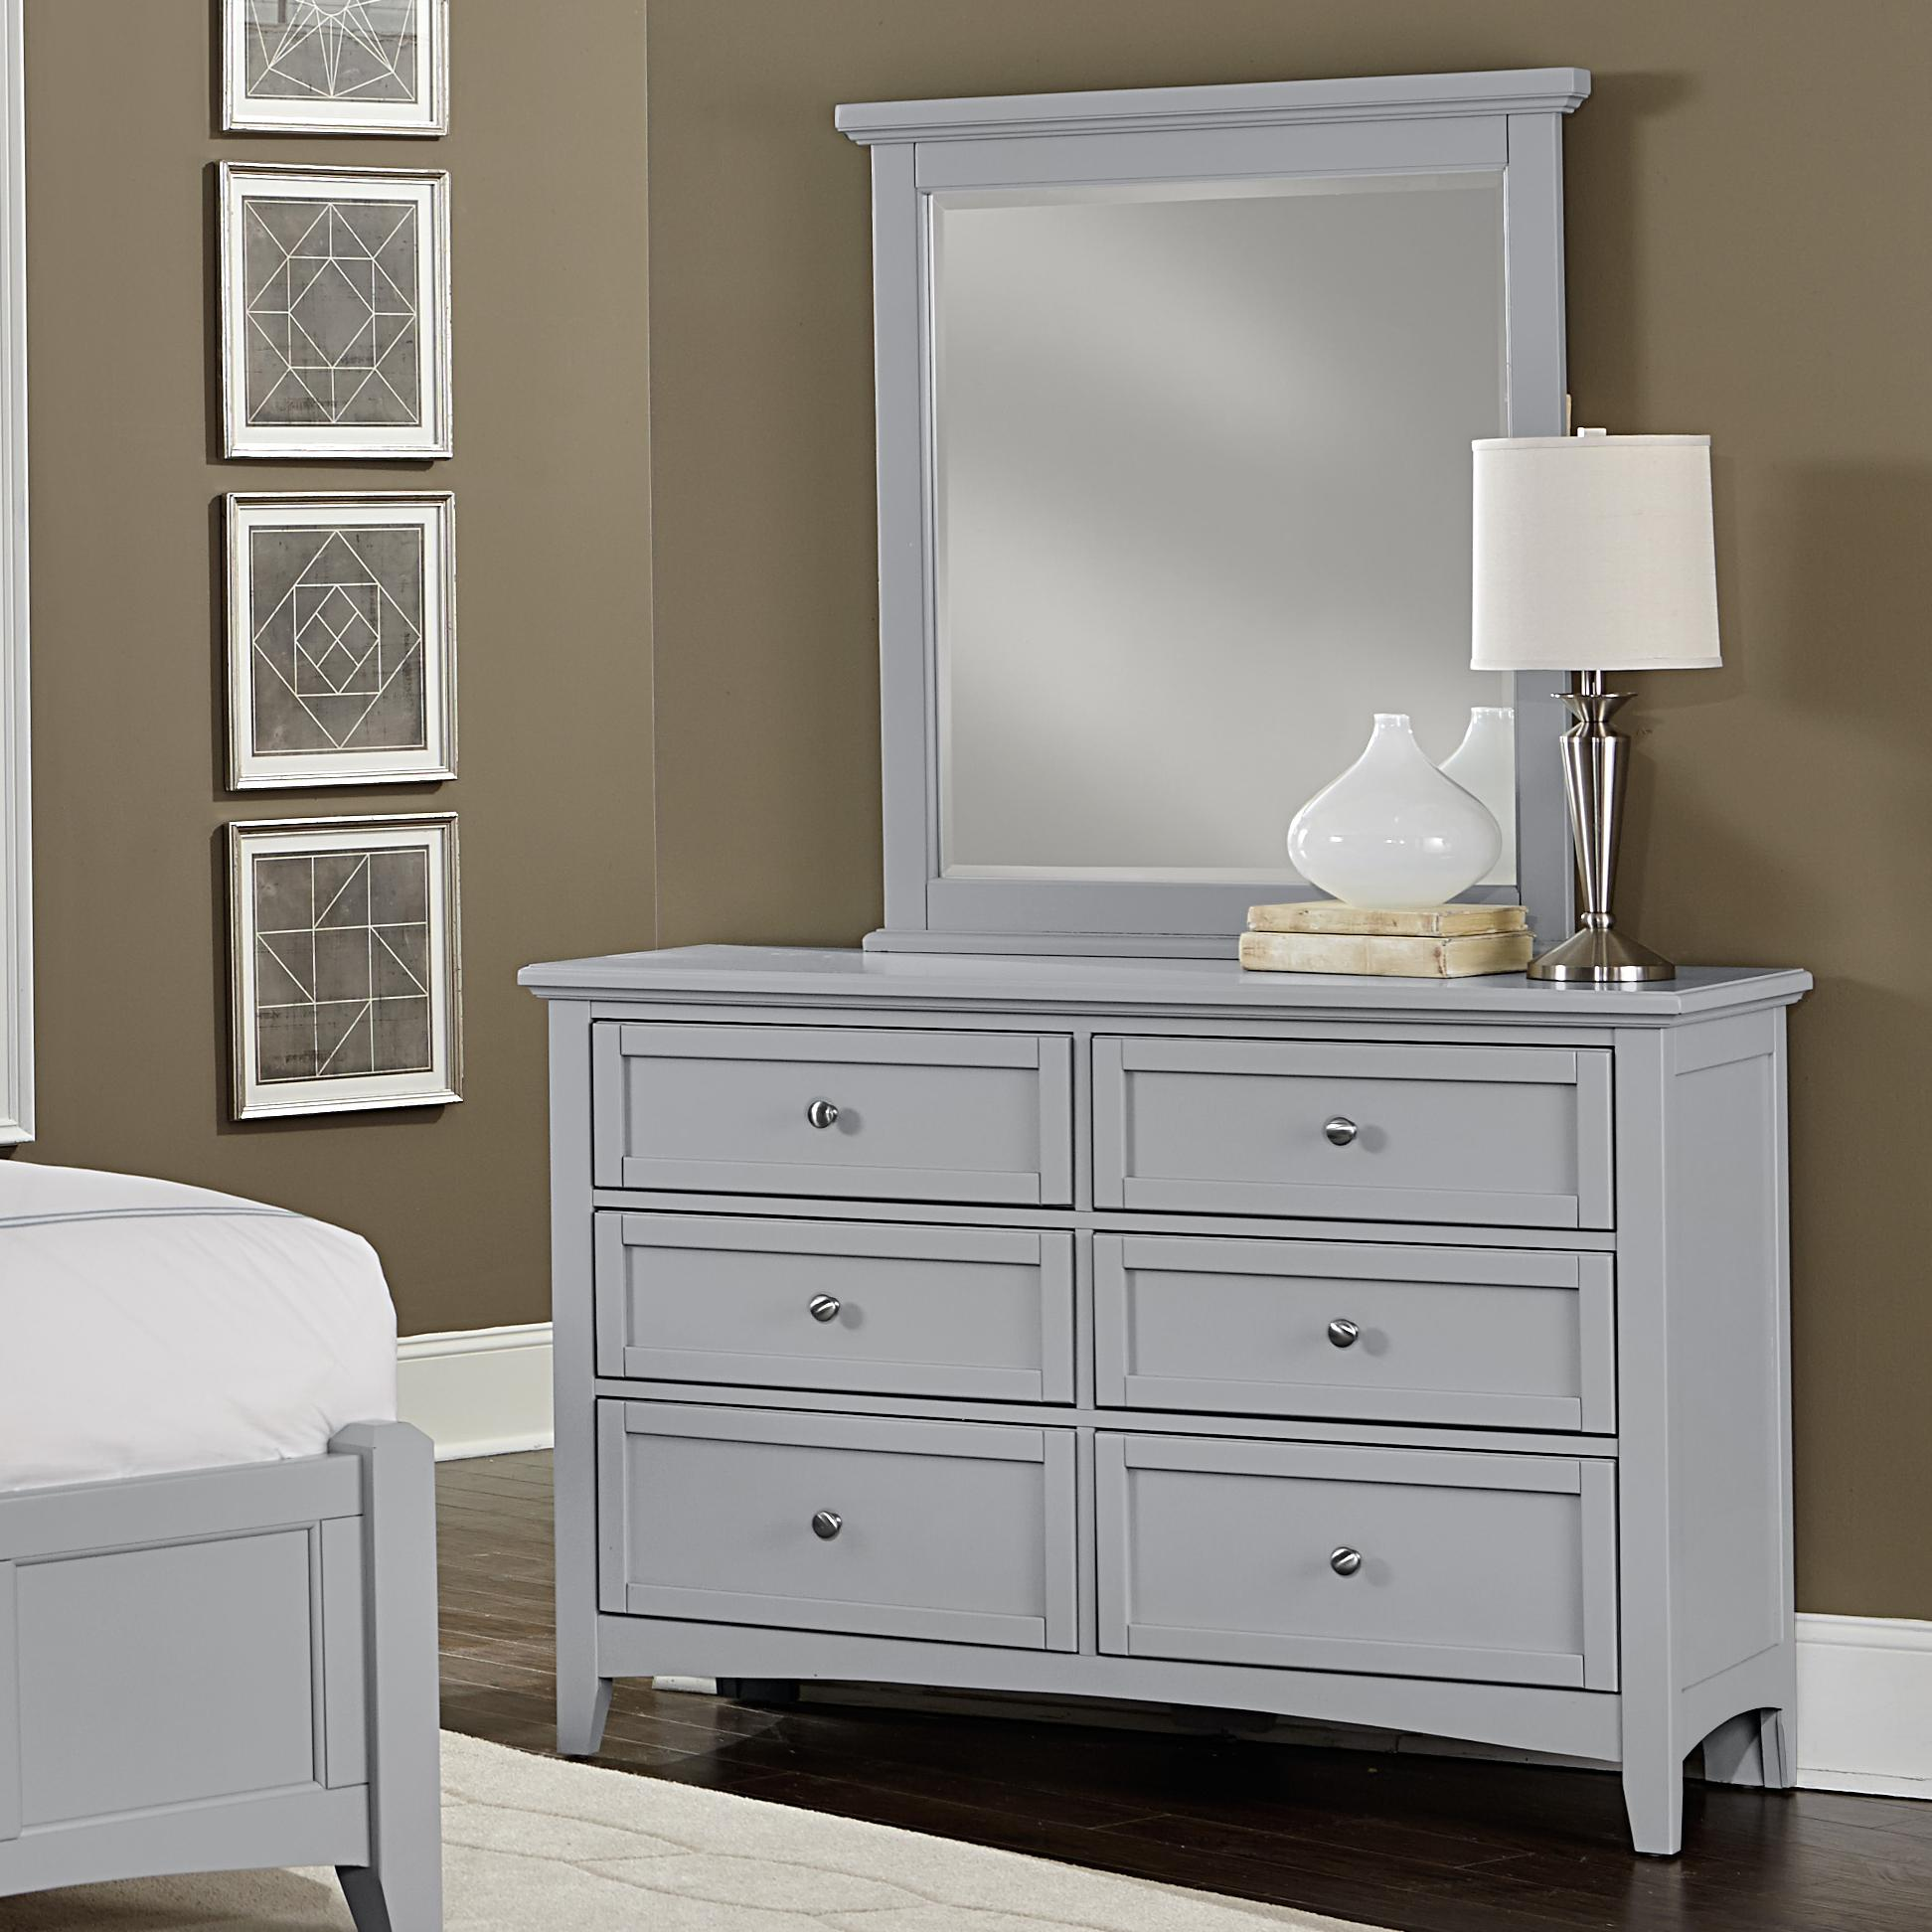 Vaughan bassett bonanza double dresser small landscape mirror olinde 39 s furniture dresser for Small dressers for small bedrooms